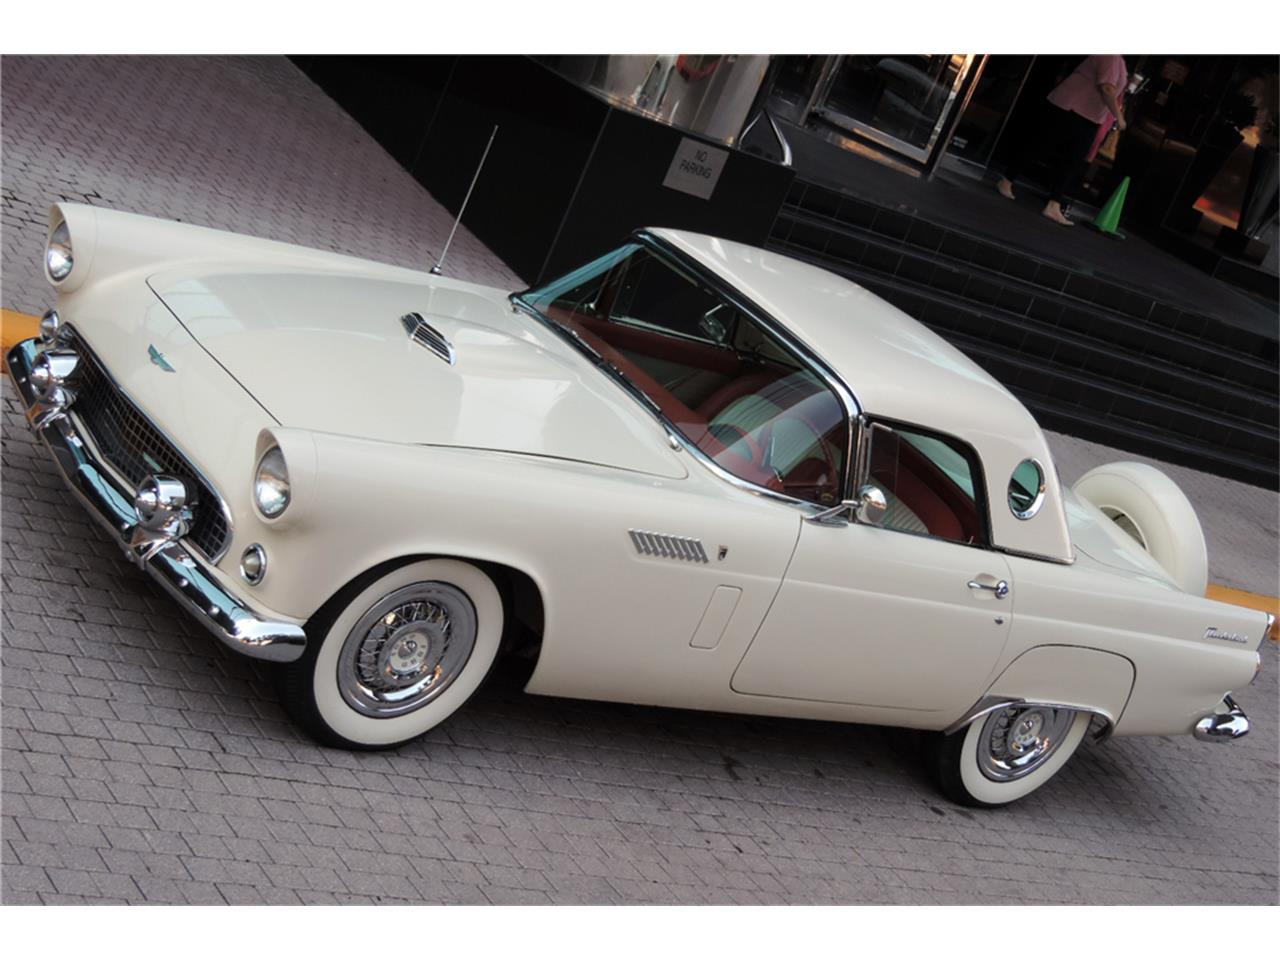 Large Picture of '56 Thunderbird located in Scottsdale Arizona Auction Vehicle Offered by Barrett-Jackson Auctions - MO5J